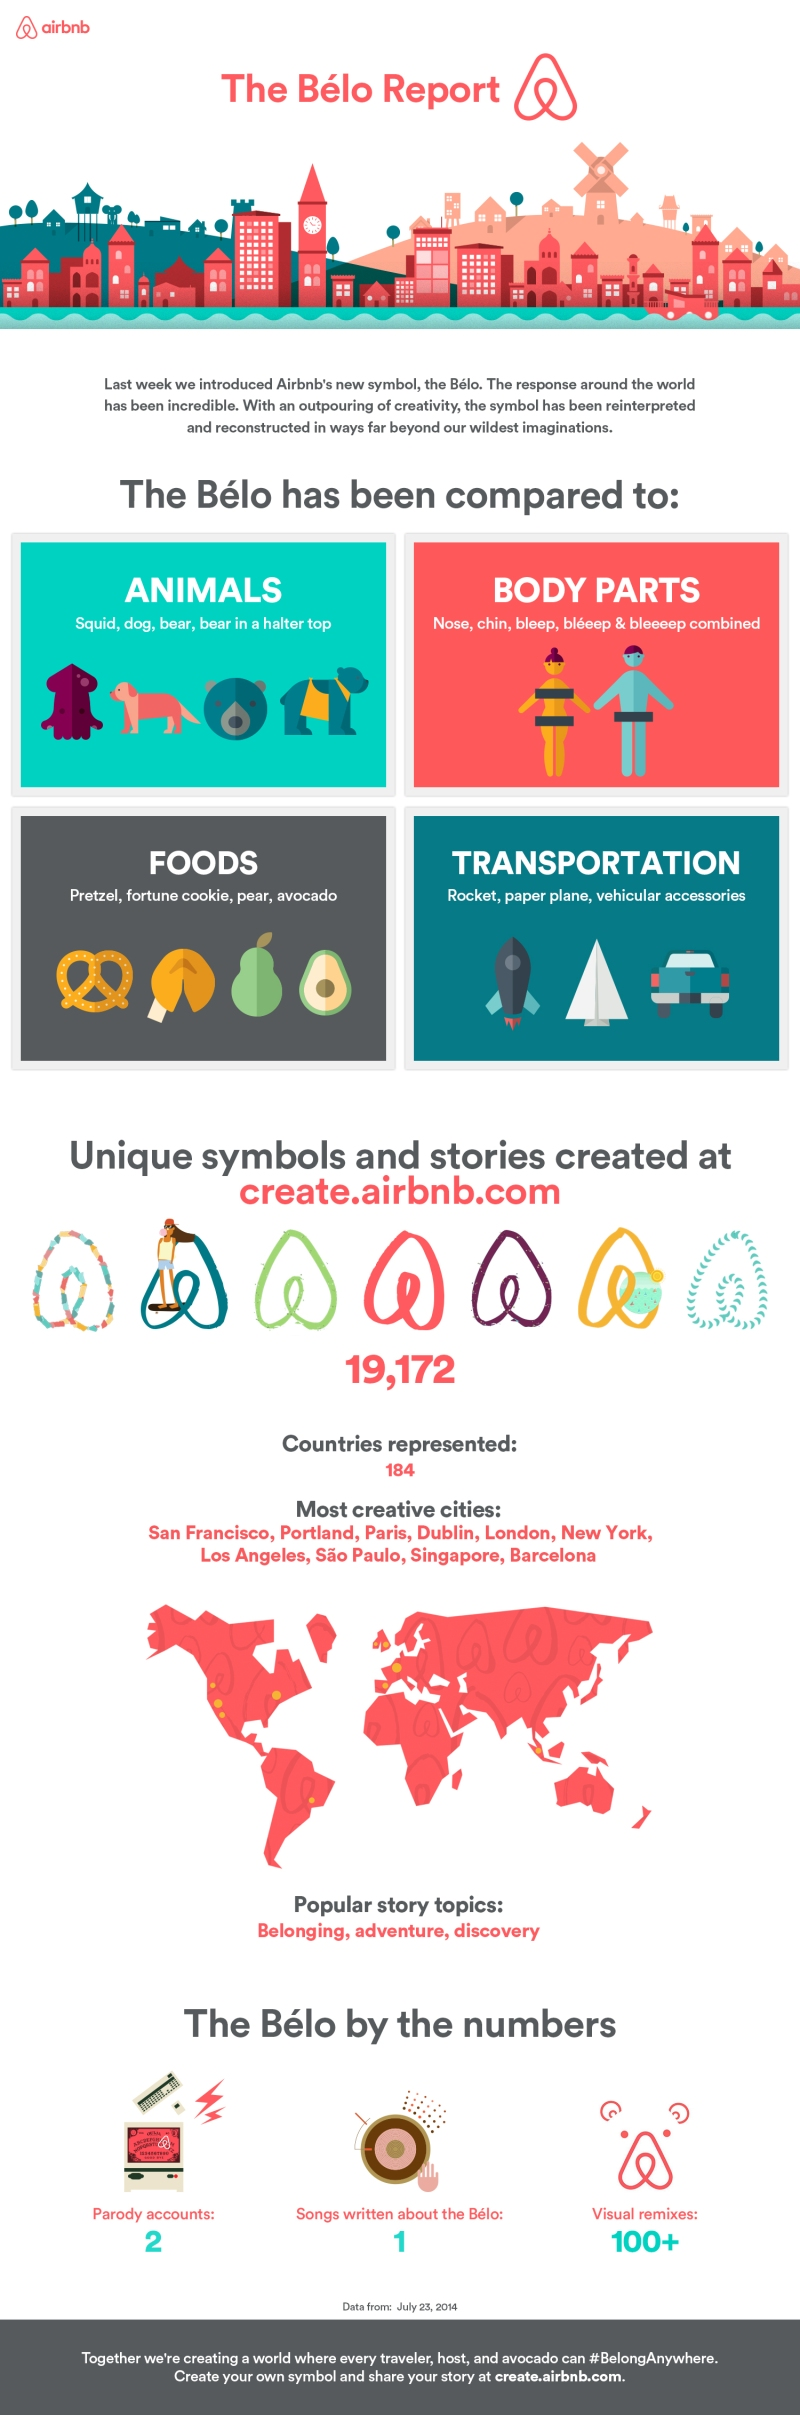 The Bélo Report - one week with the new Airbnb symbol